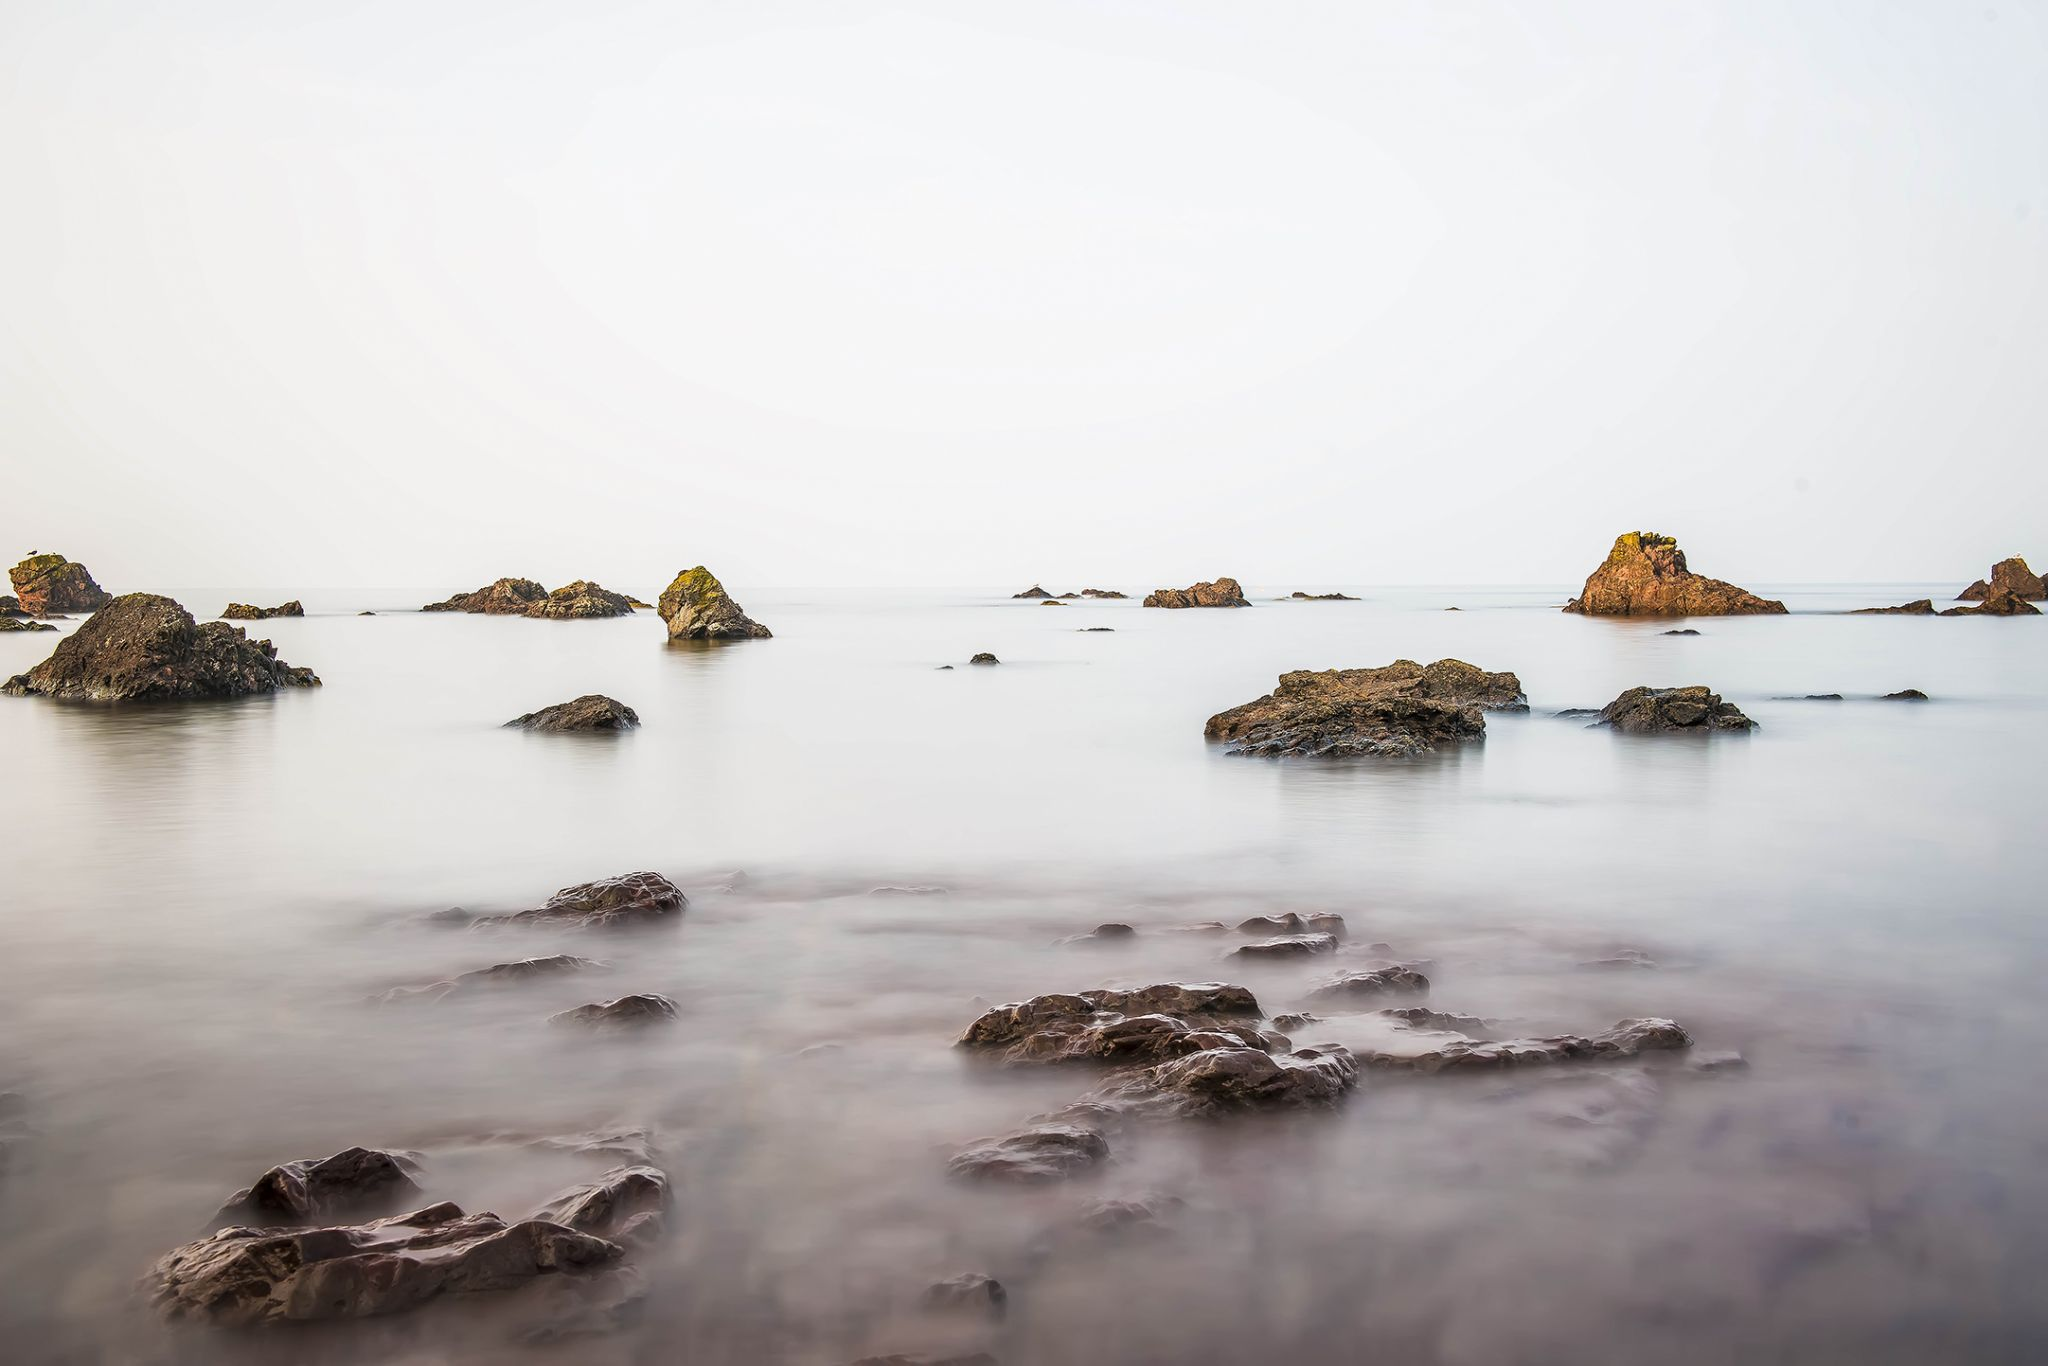 Stoned the sea by Paul Tebbs @ImaginPhotography